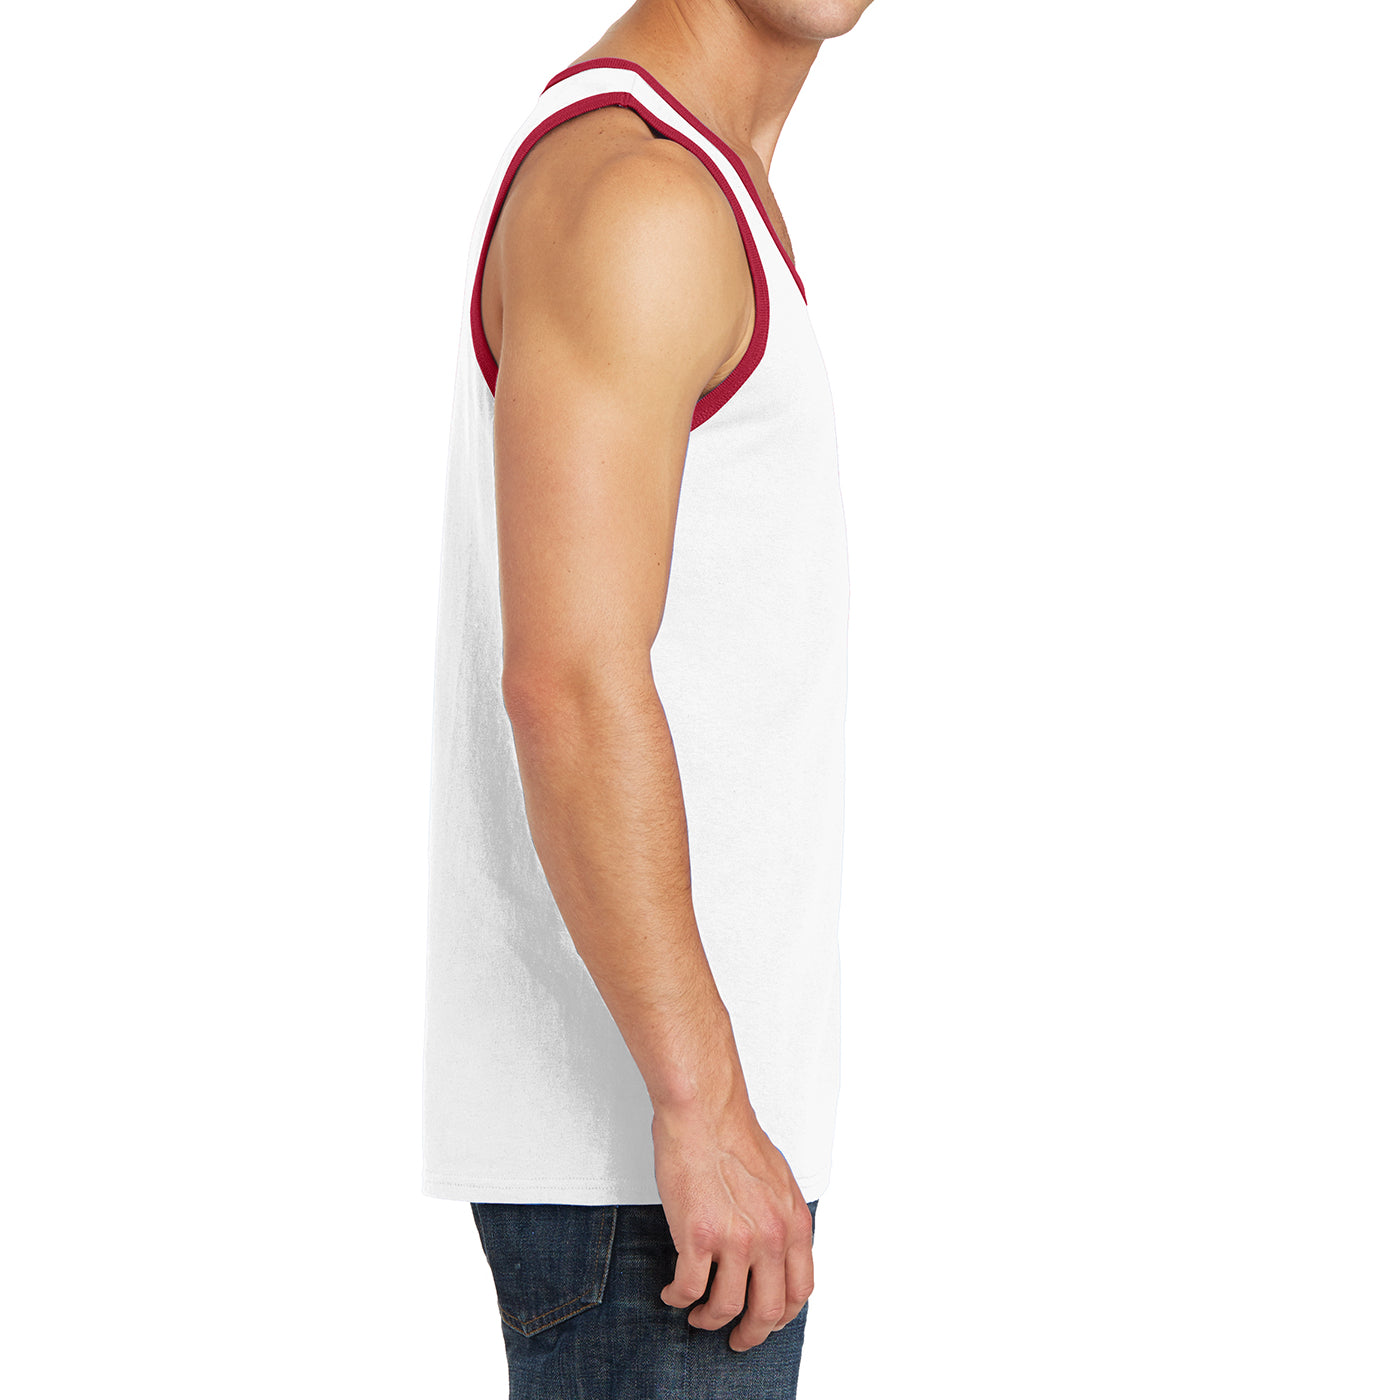 Men's Core Cotton Tank Top - White/ Red - Side